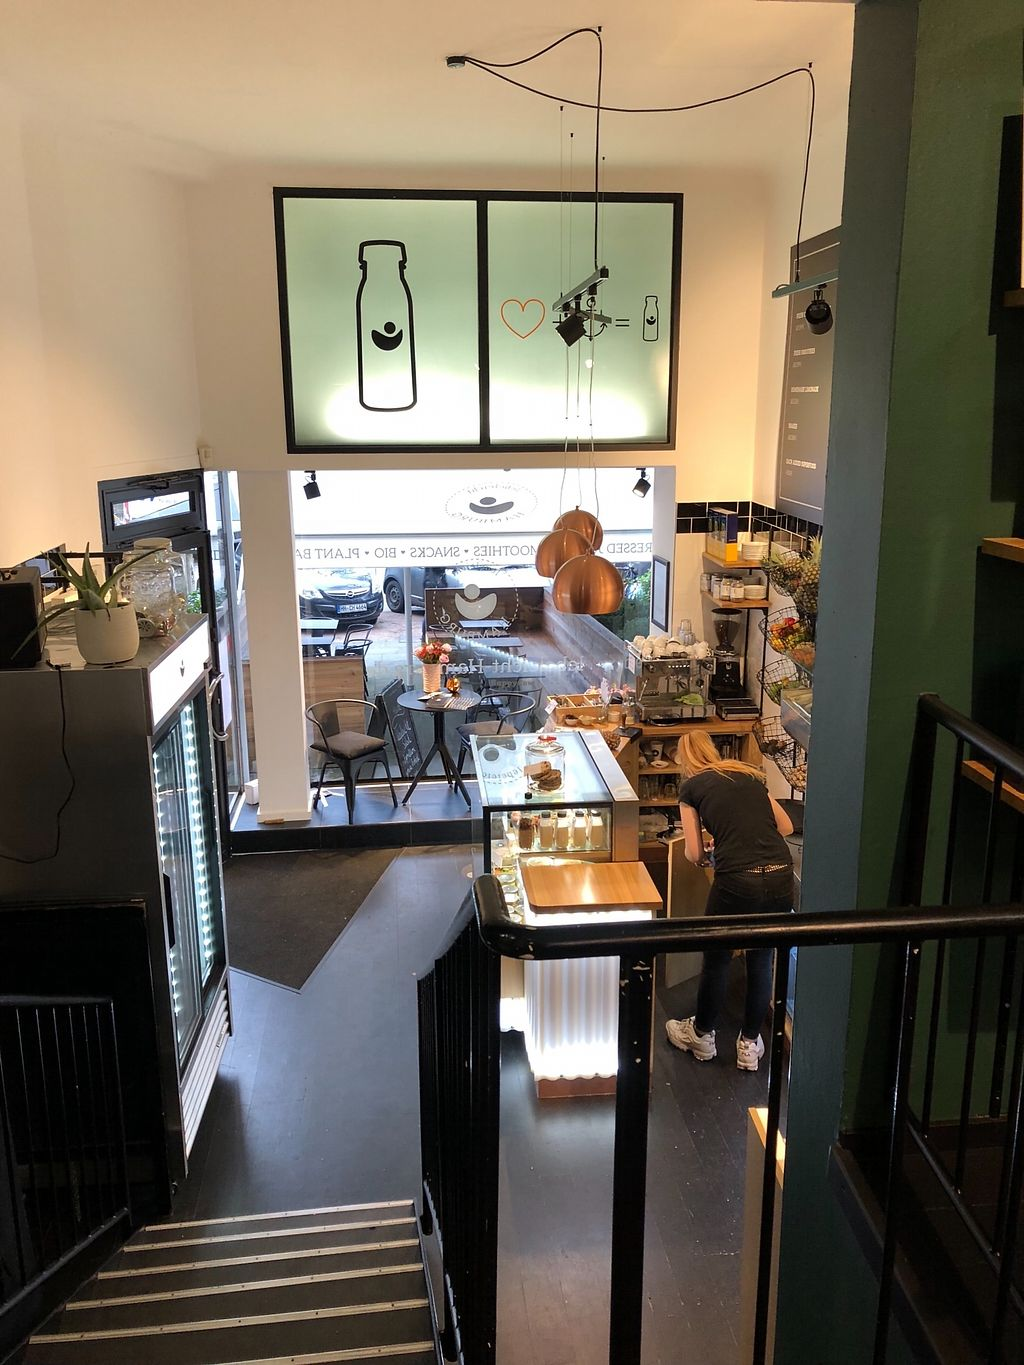 """Photo of Lebeleicht Hamburg  by <a href=""""/members/profile/anninamaier"""">anninamaier</a> <br/>Bottom part of the café <br/> February 7, 2018  - <a href='/contact/abuse/image/103727/356164'>Report</a>"""